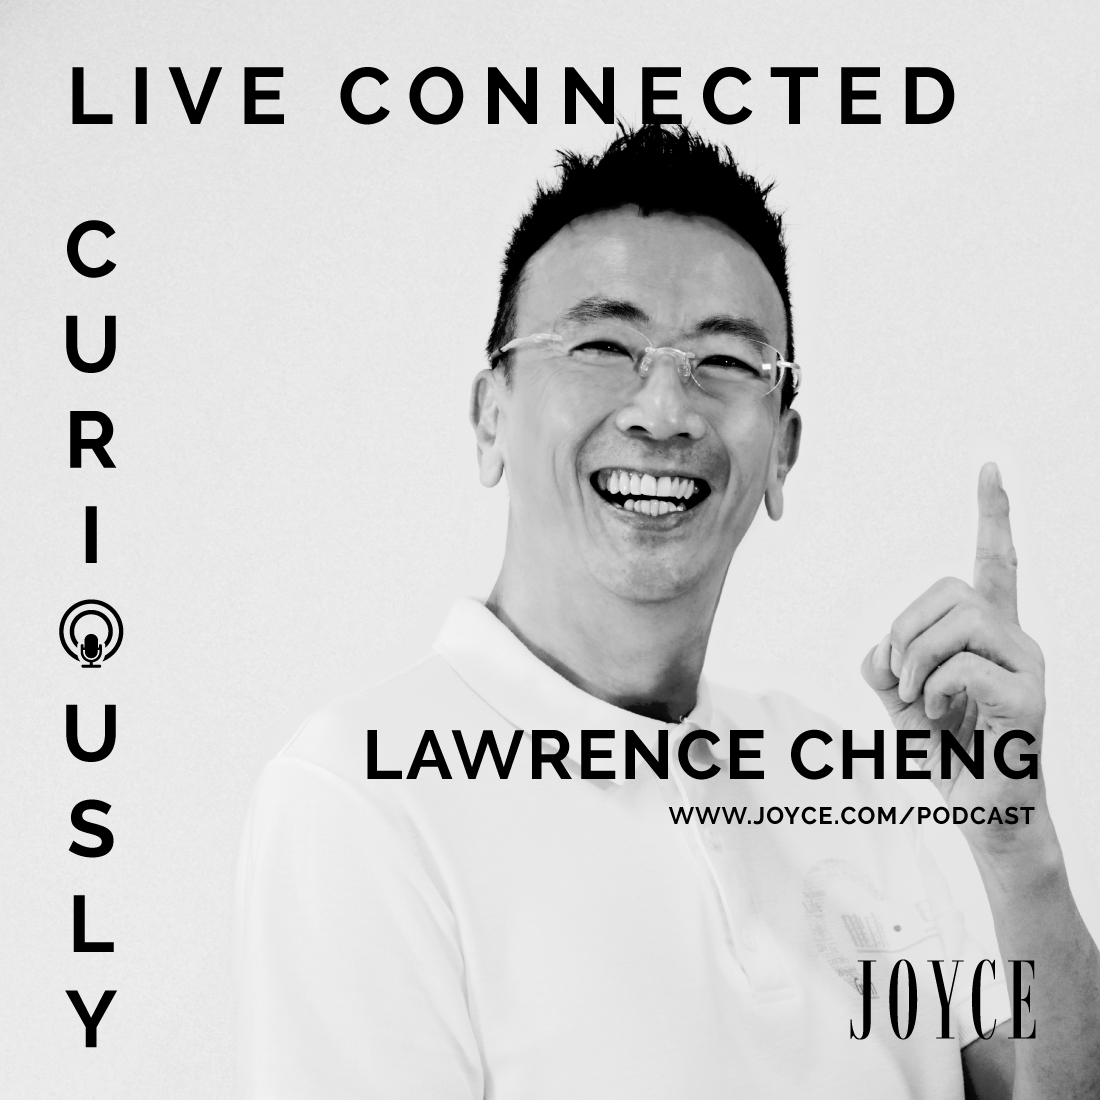 LIVE CONNECTED: LAWRENCE CHENG